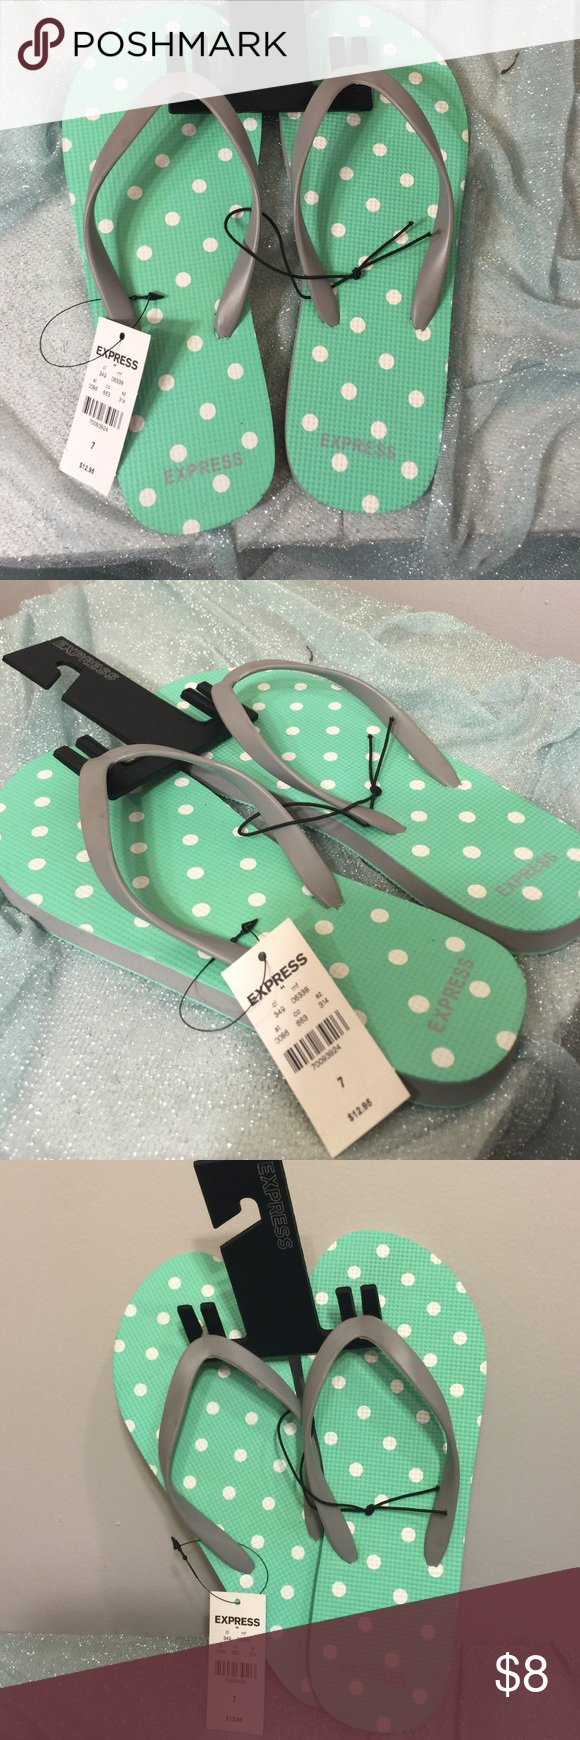 Polka Dot Tiffany Blue Flip Flops Brand new, ADORABLE polka dot flip-flops! Express Shoes Sandals